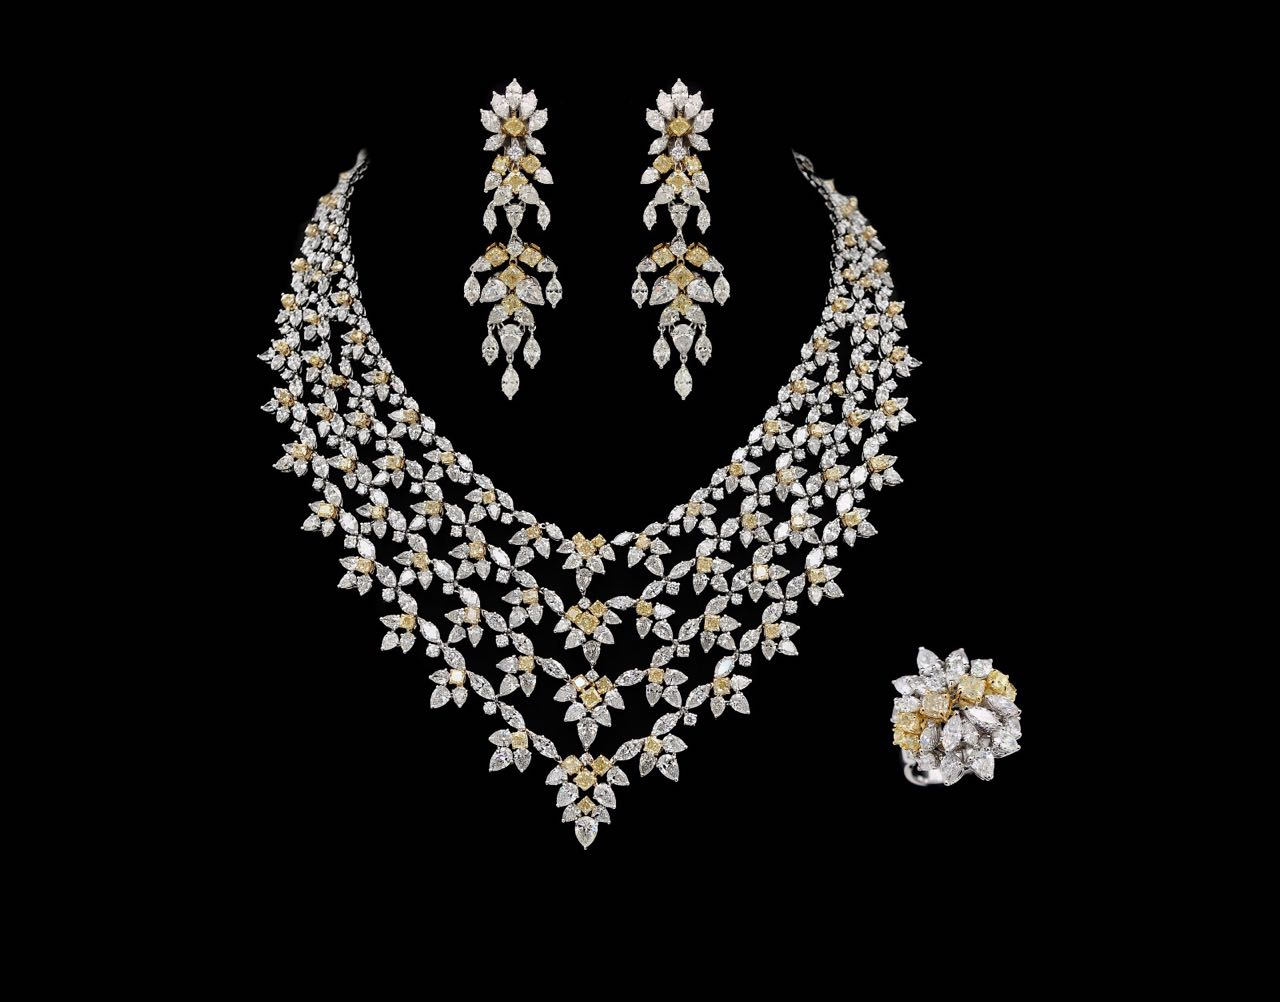 White and Yellow diamond necklace, earring and ring set